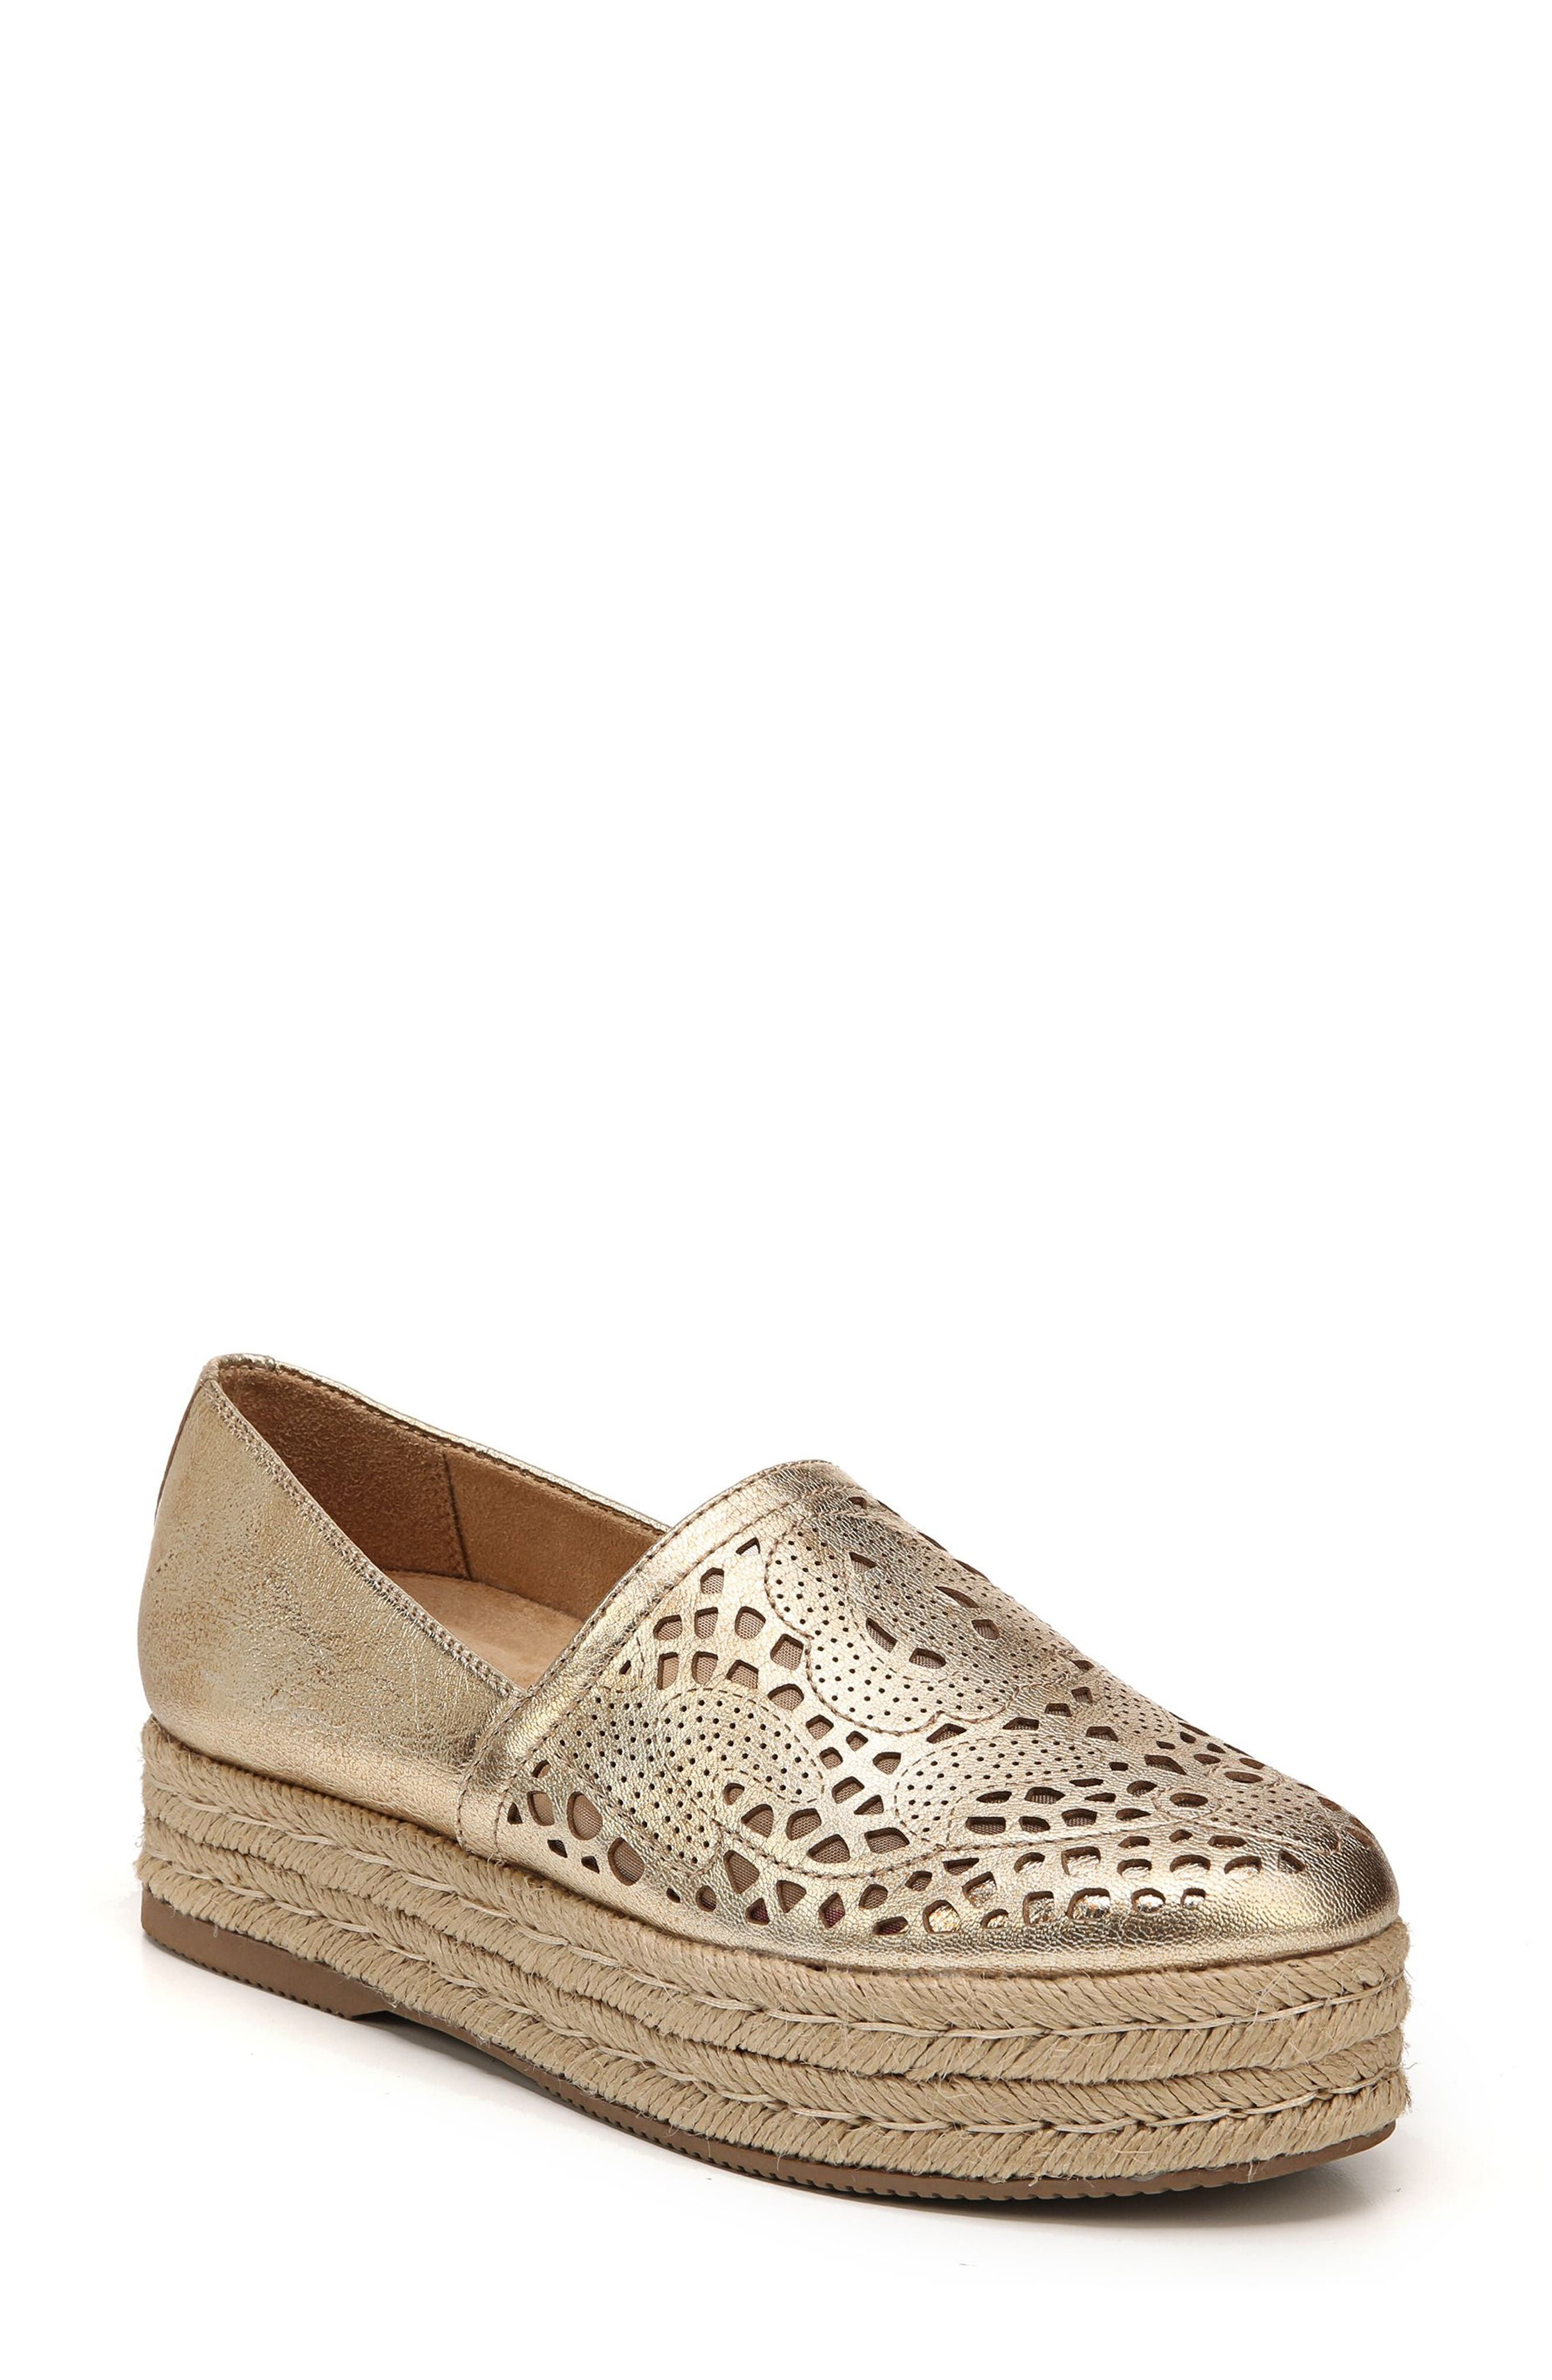 Thea Perforated Platform Espadrille,                             Main thumbnail 1, color,                             Platino Leather